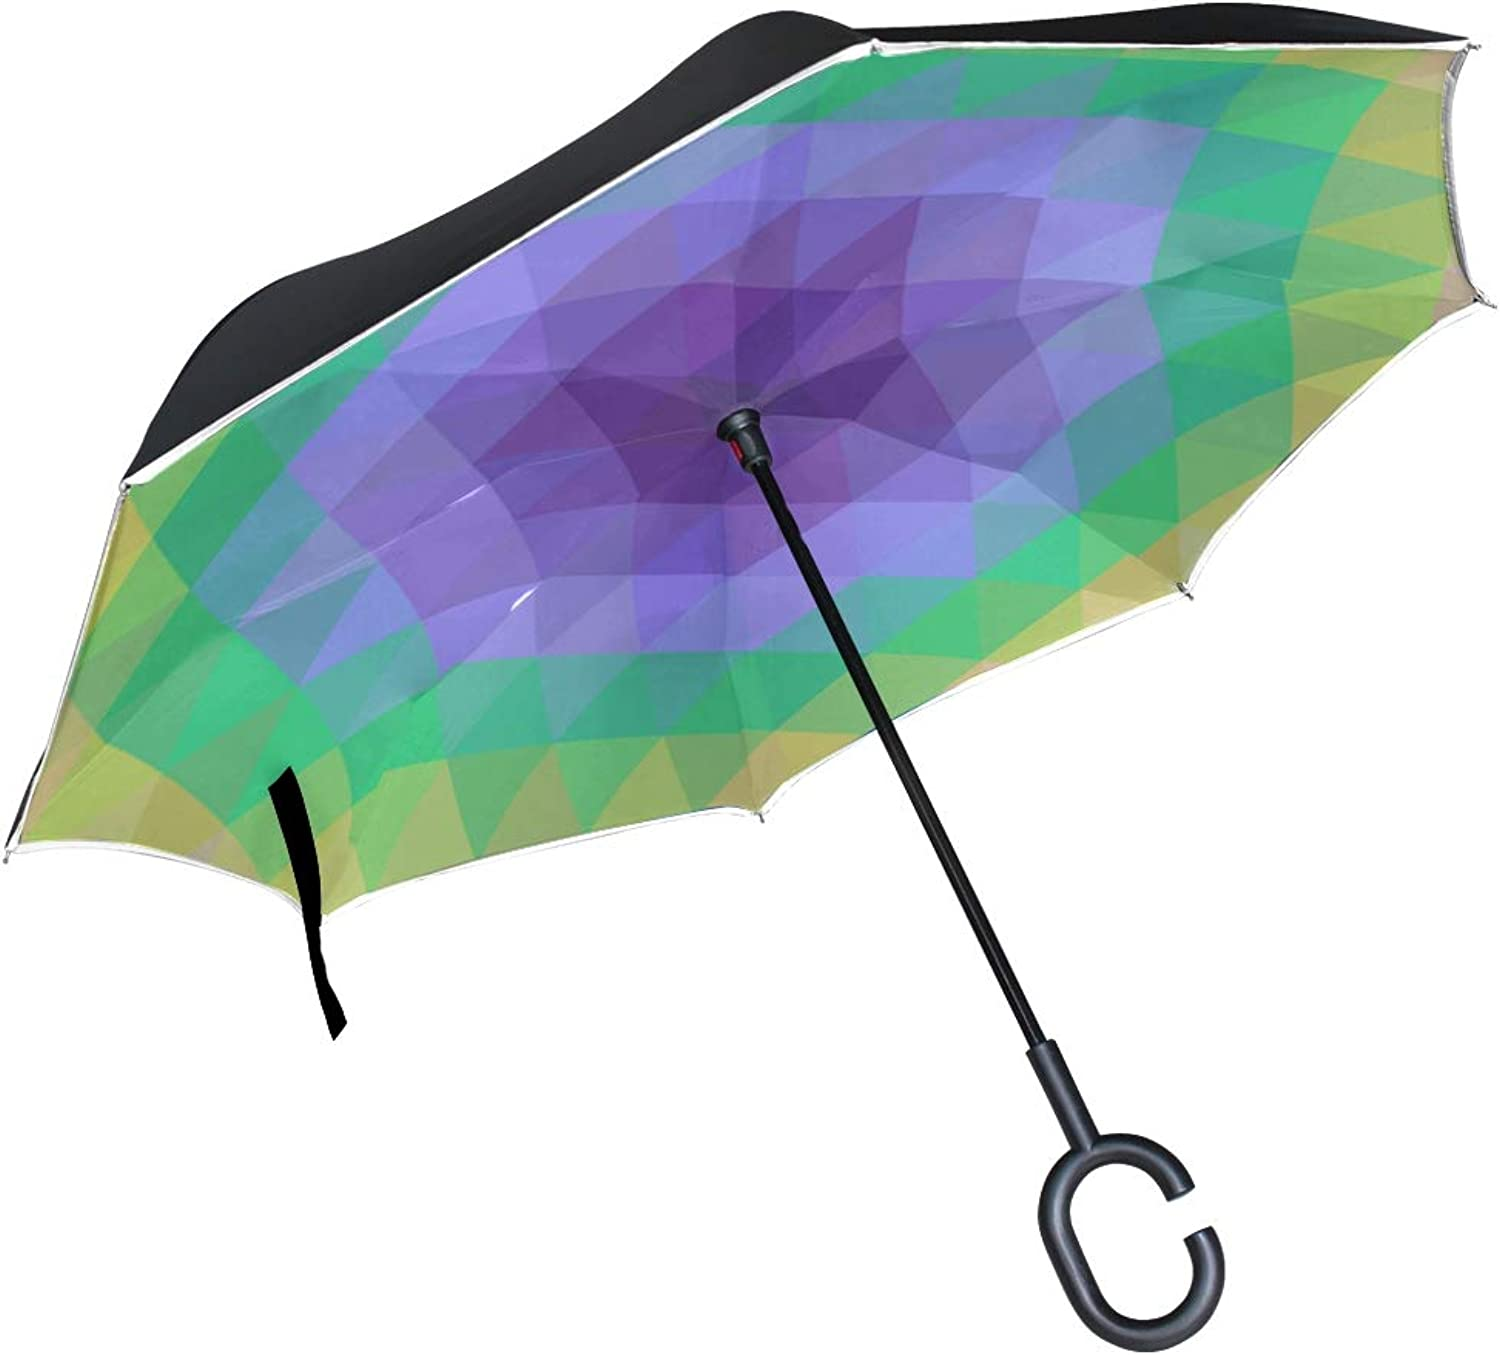 Double Layer Ingreened Abstract Texture Triangle Geometric Pattern Umbrellas Reverse Folding Umbrella Windproof Uv Predection Big Straight Umbrella for Car Rain Outdoor with CShaped Handle